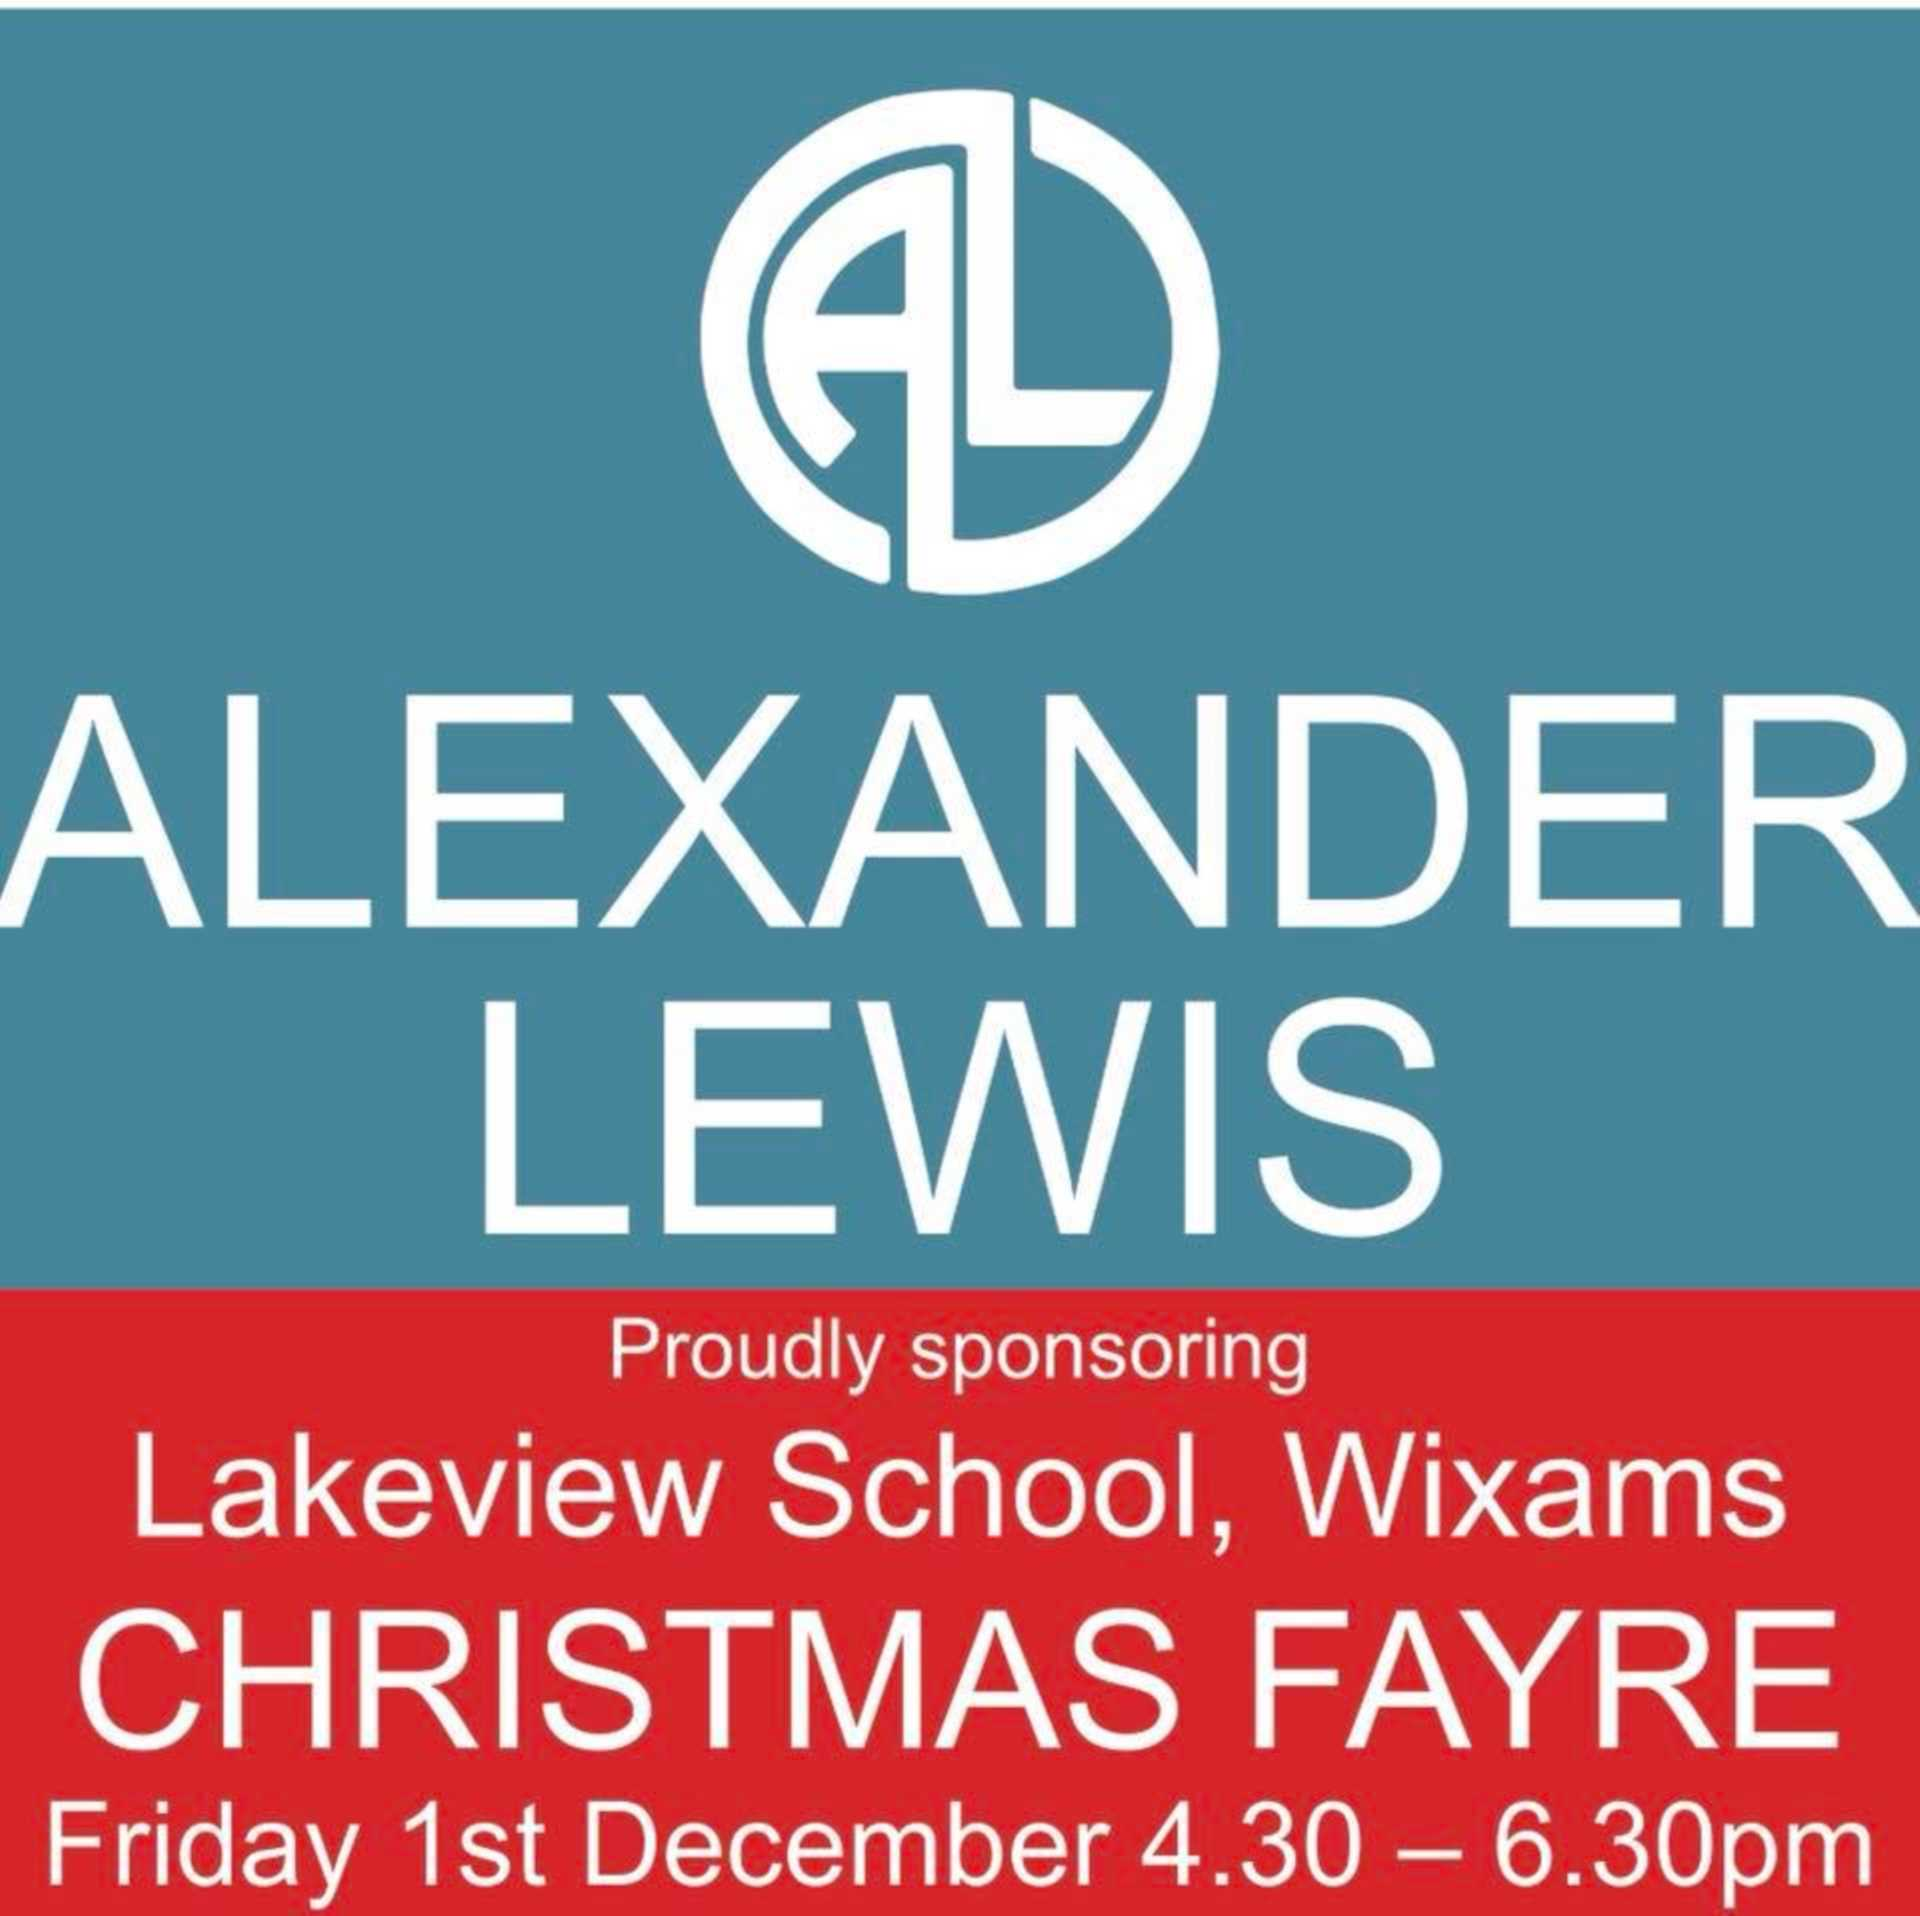 Lakeview School, Wixams Christmas Fair